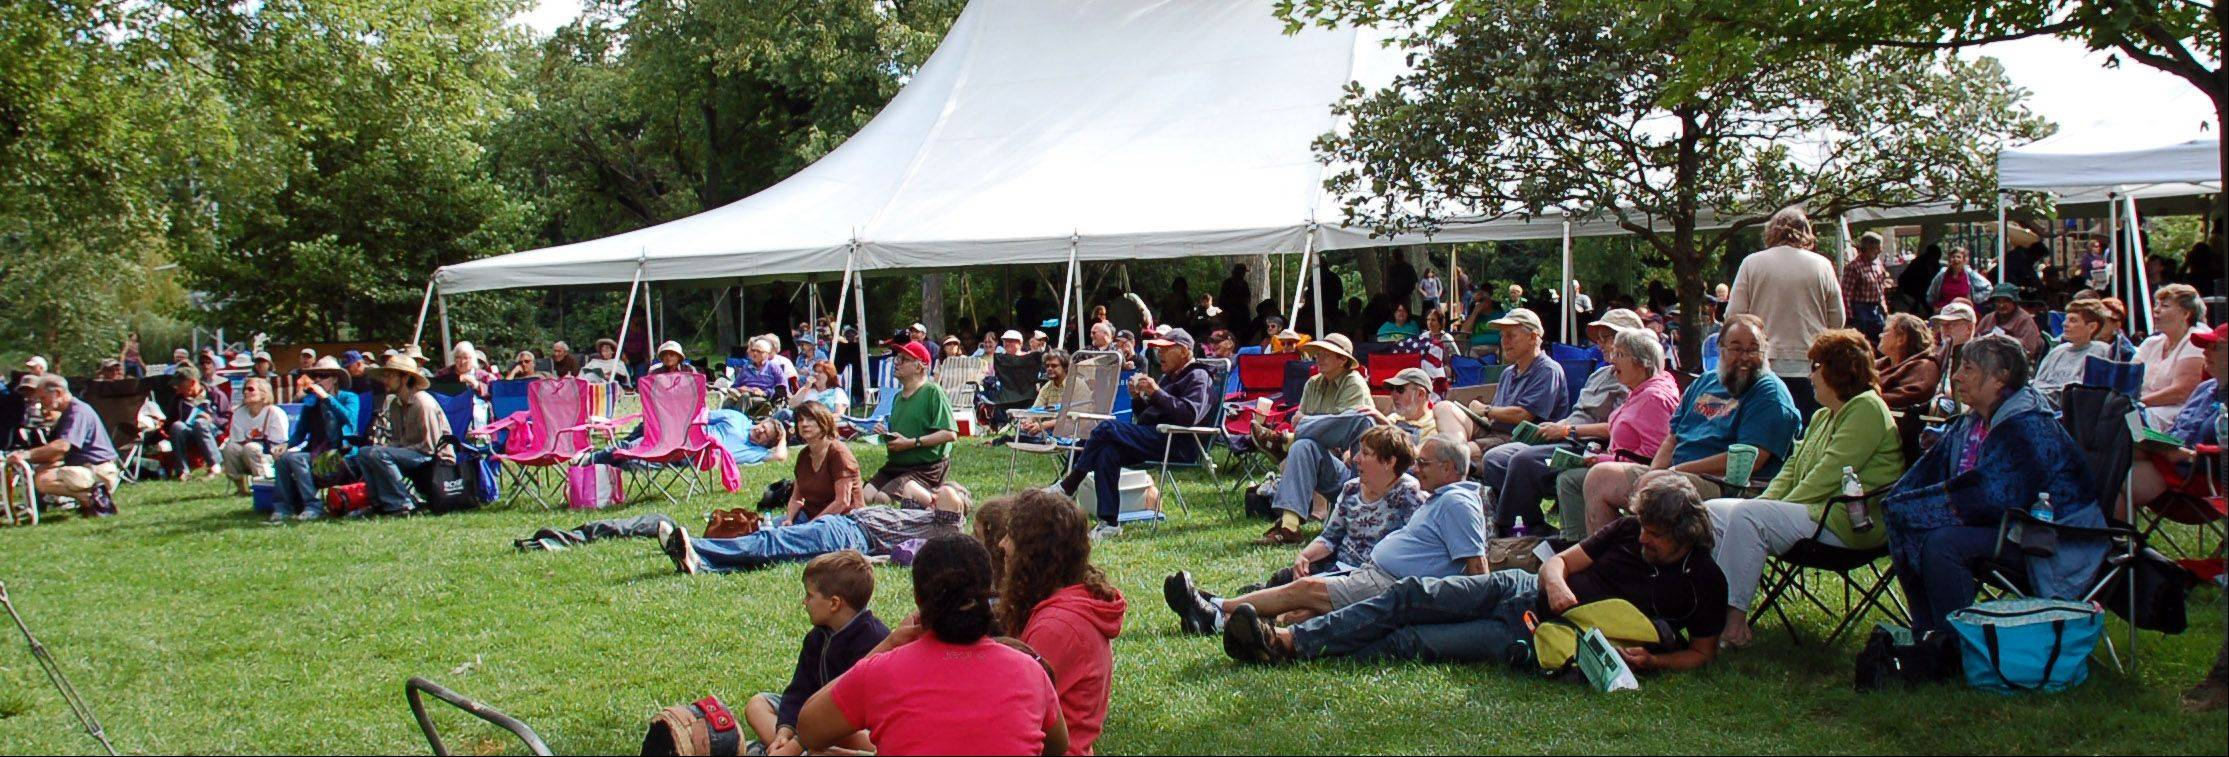 Visitors enjoy sitting in front of the main stage and listening to live folk music all afternoon during the 35th Fox Valley Folk Music & Storytelling Festival at Island Park in Geneva.